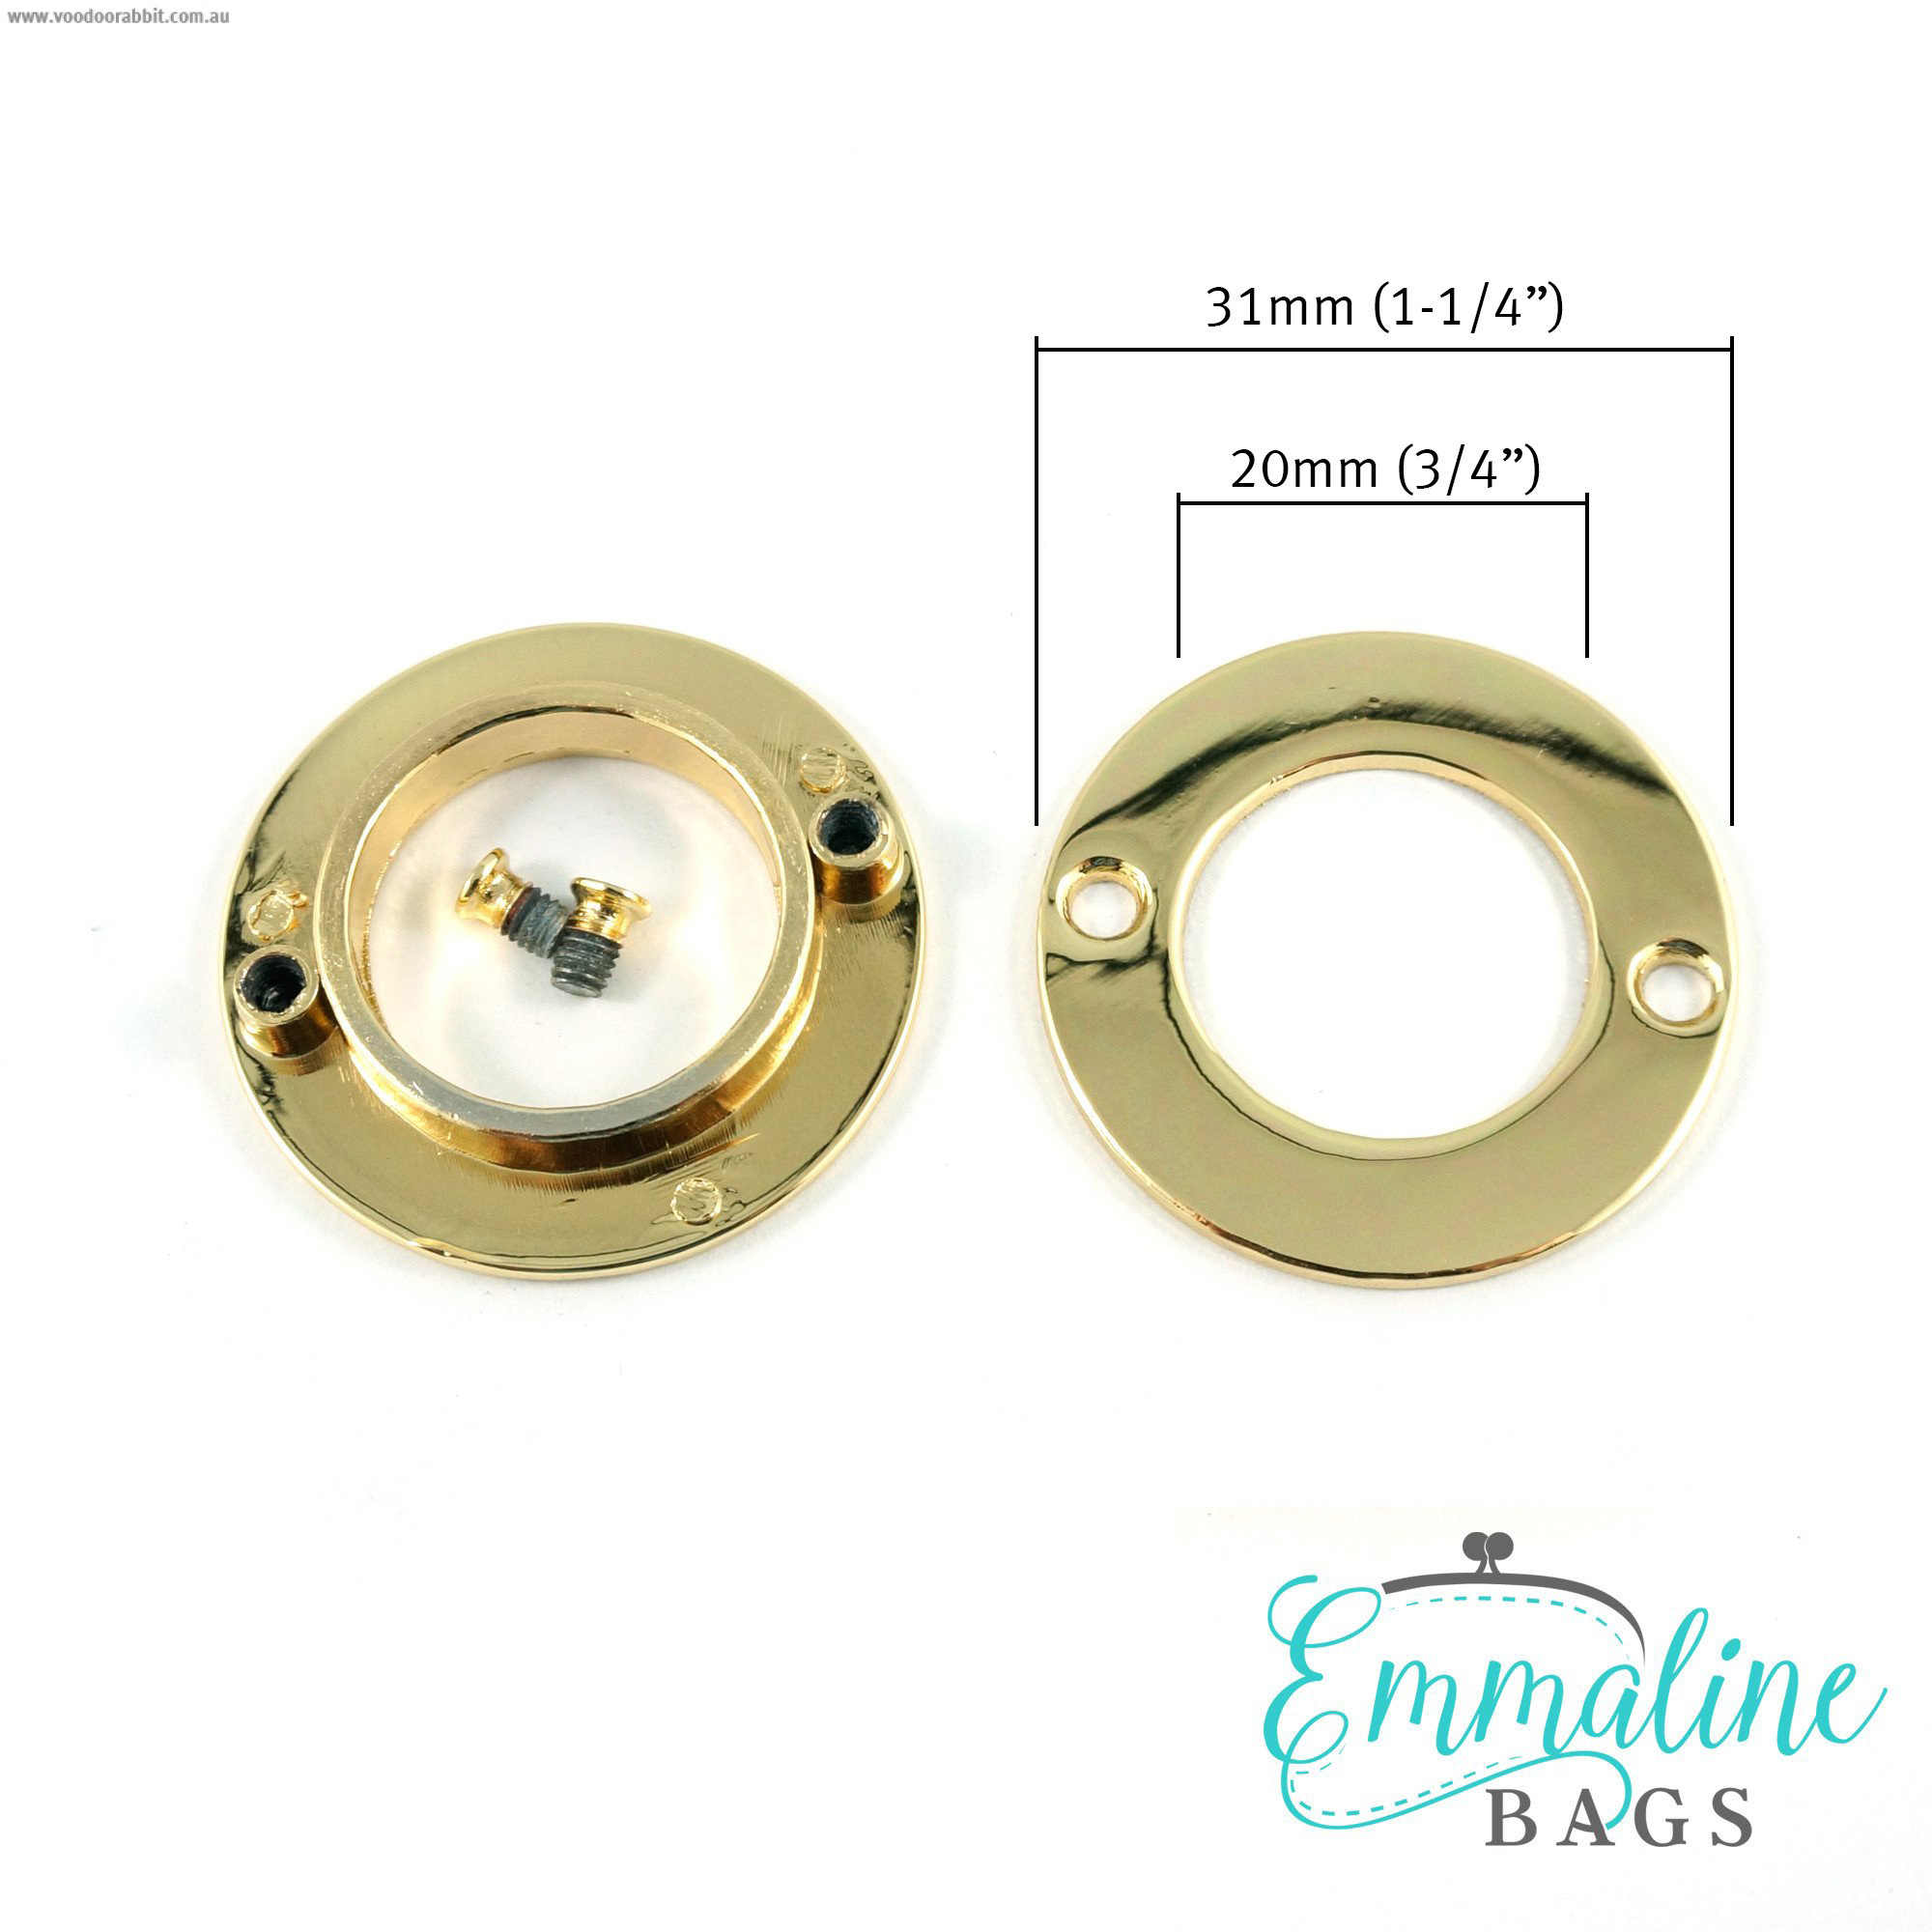 "Emmaline Bags Screw Together Grommets 20mm (3/4"") Round in Gold - 4pk"